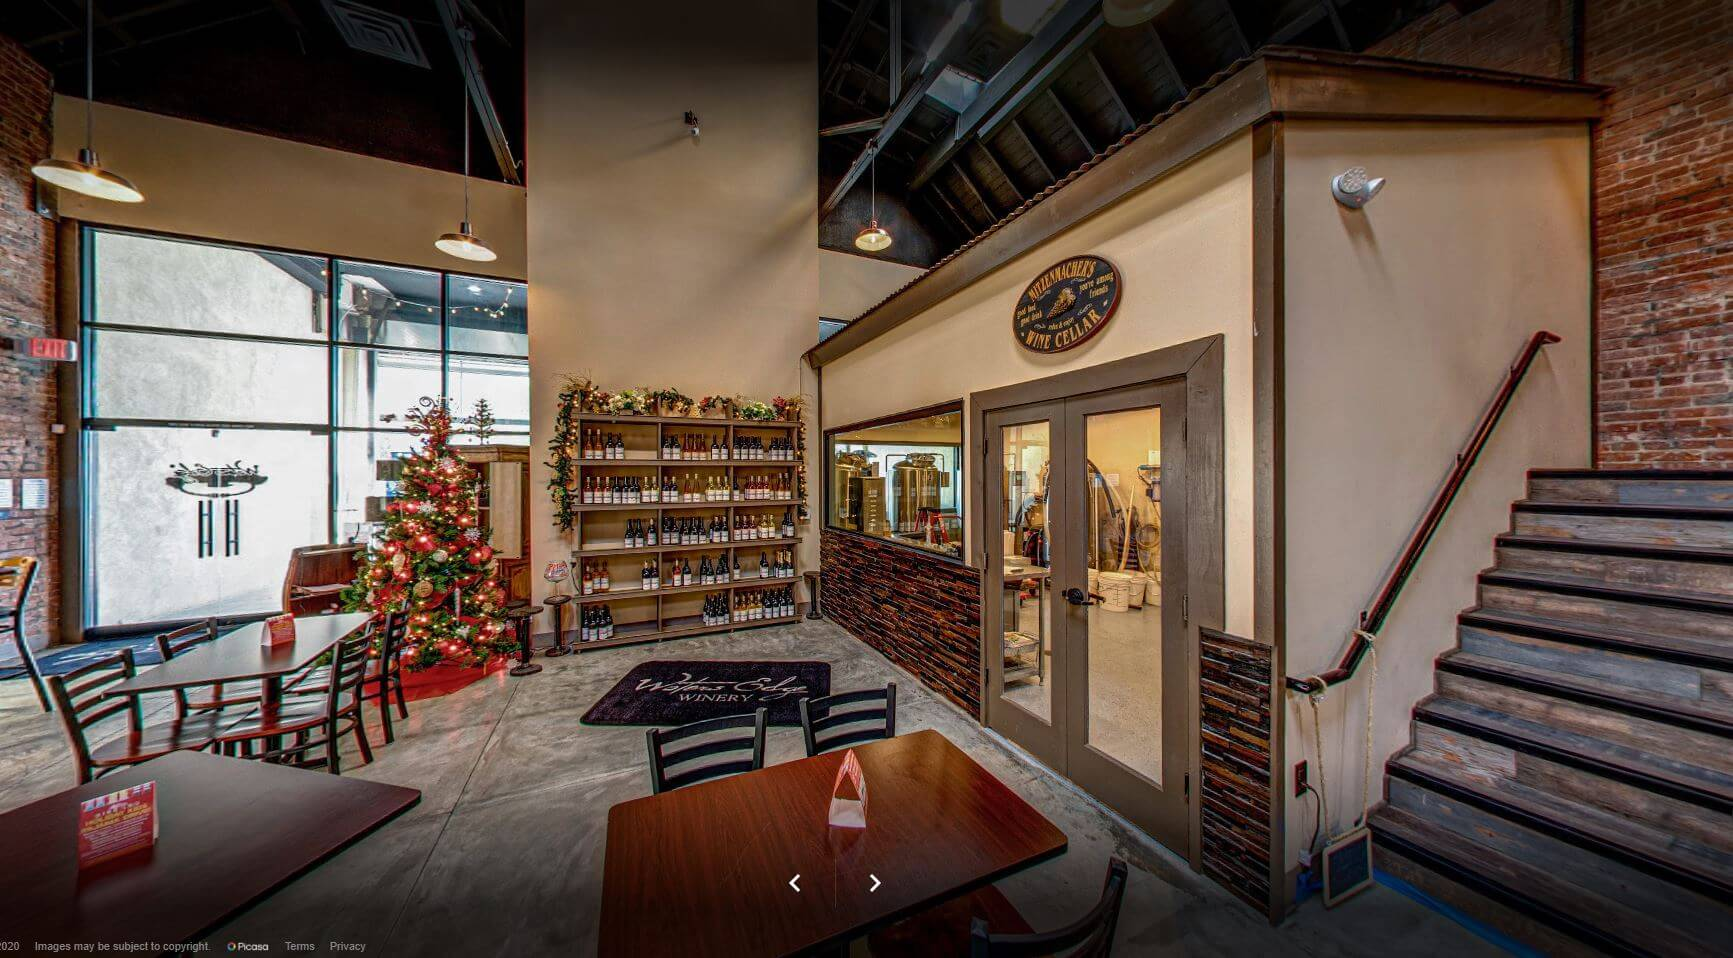 Shoreline Cellars decorated for Christmas